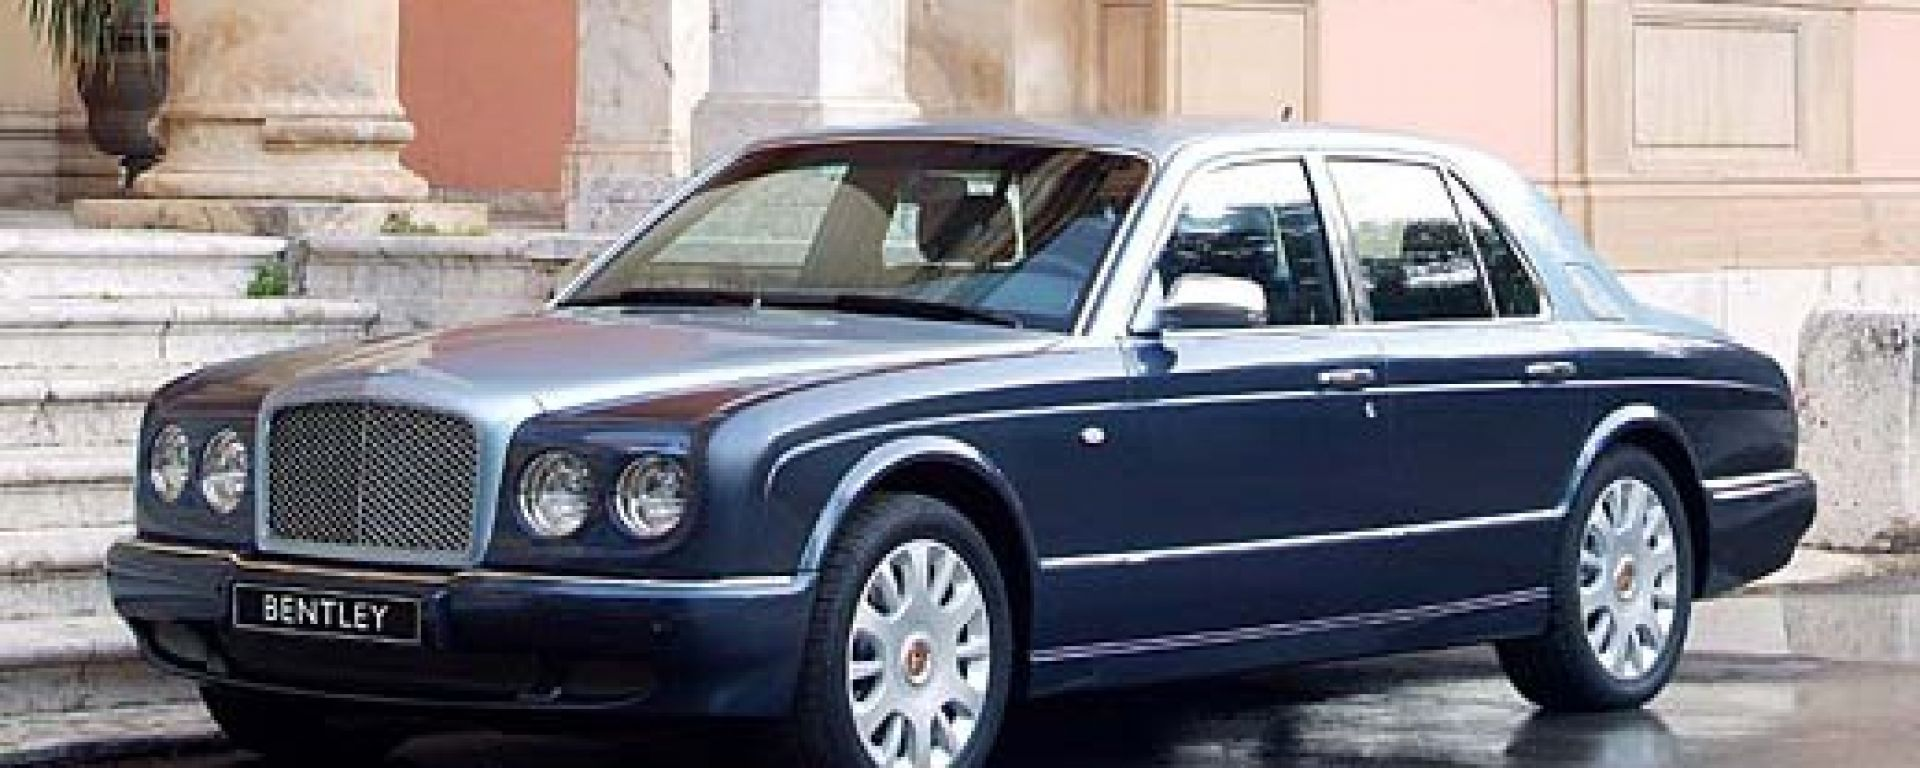 Anteprima: Bentley Arnage '05